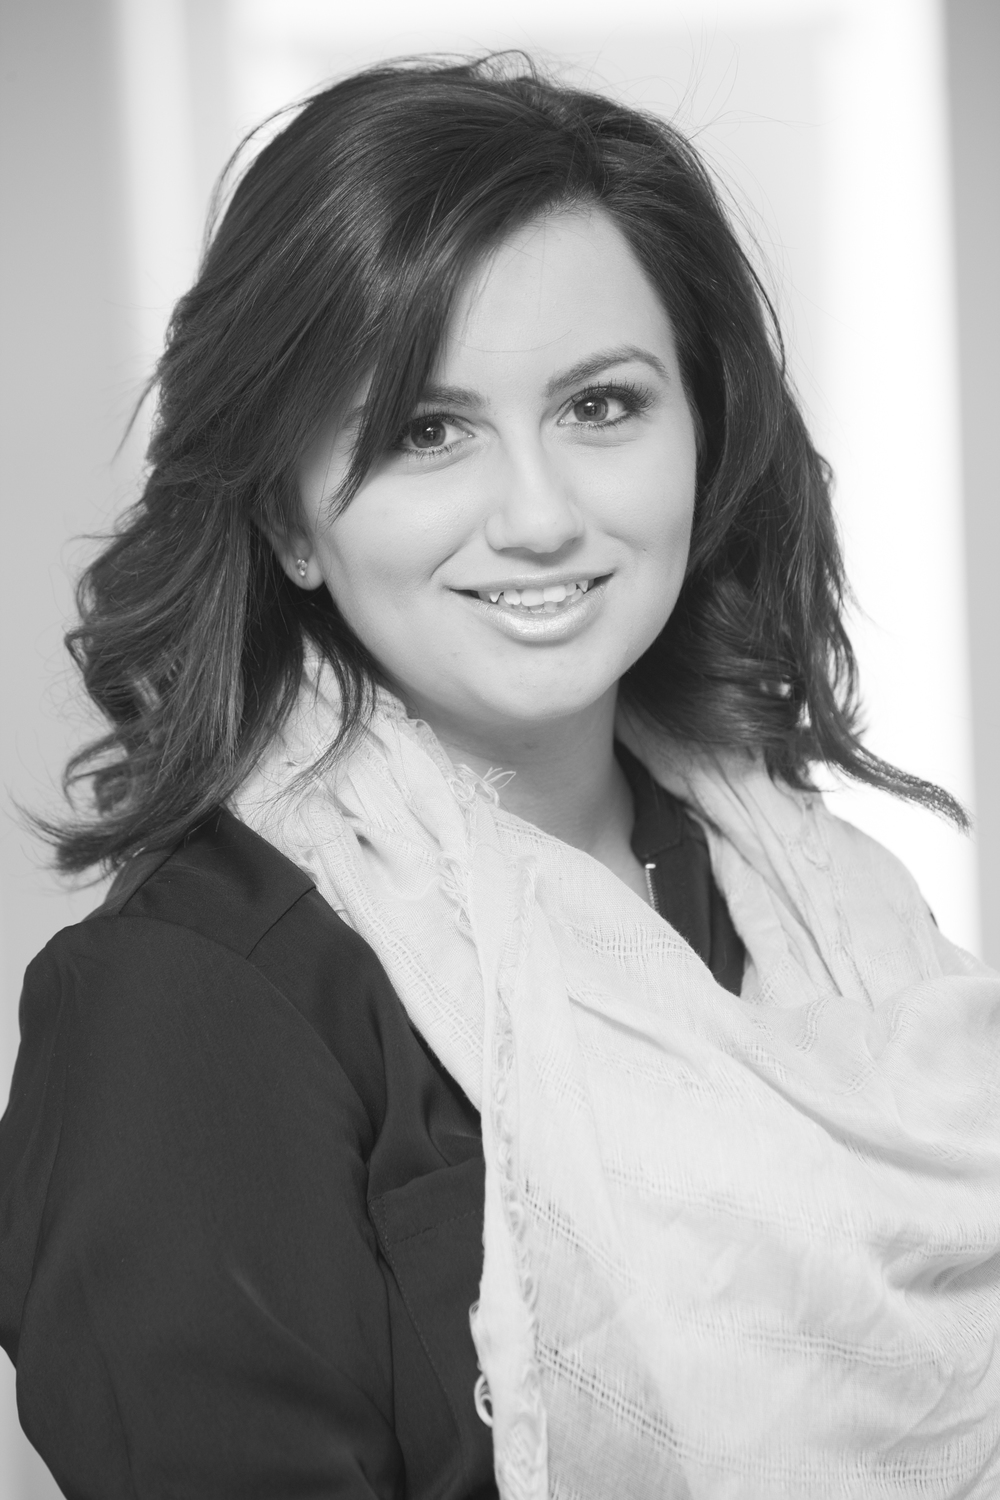 Anne Marie, Colourist anne marie has been educated in numerous colour lines like l'oreal, paul mitchell, matrix, and aveda. she is passionate about using her extensive knowledge to help you achieve your best look and she is always happy to accept new clients.